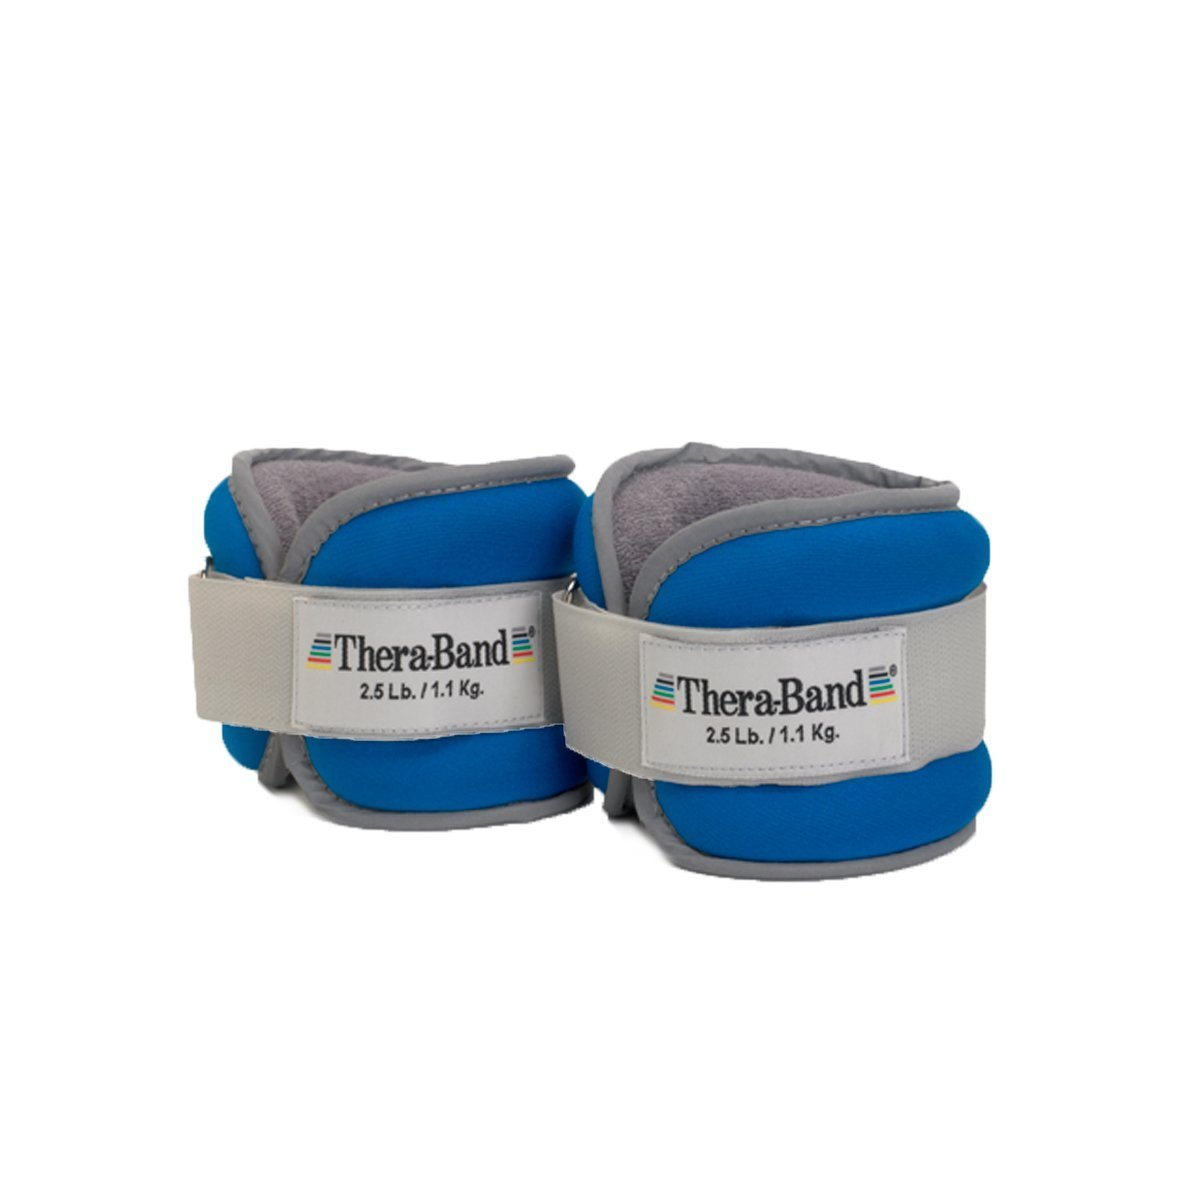 TheraBand Ankle Weight